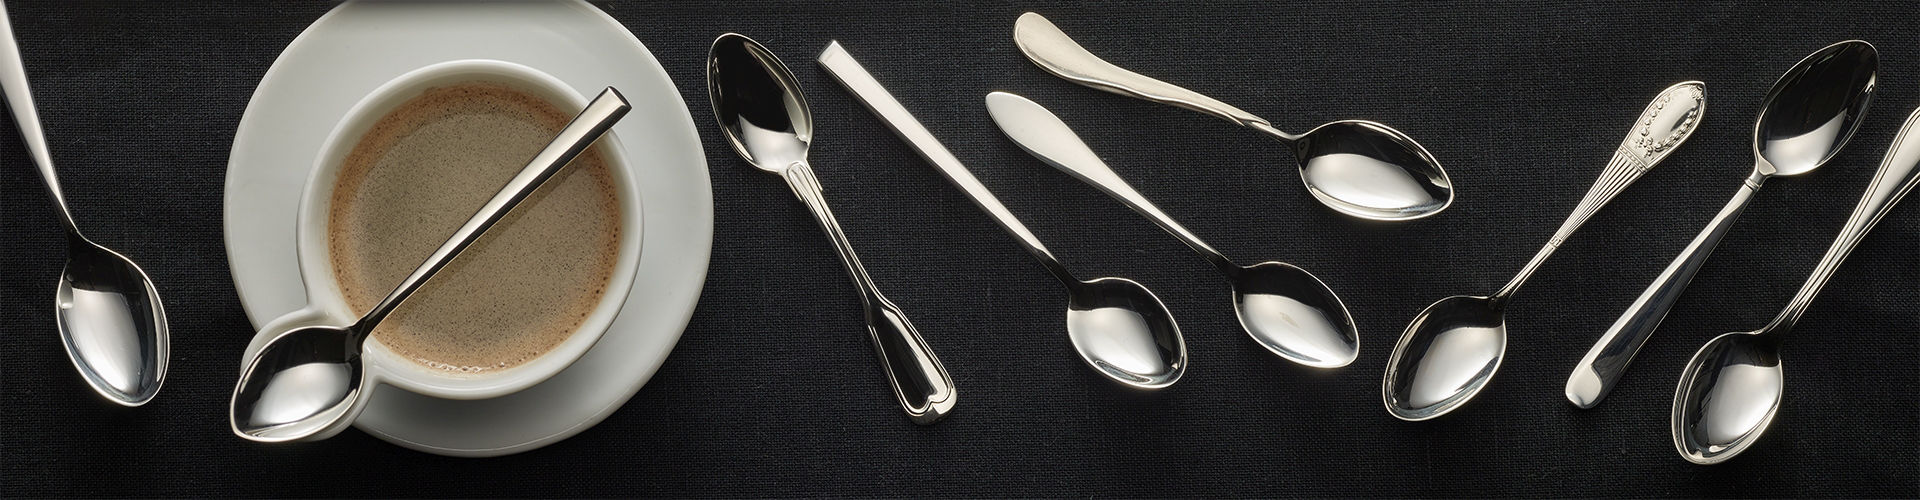 Cutlery by Piece